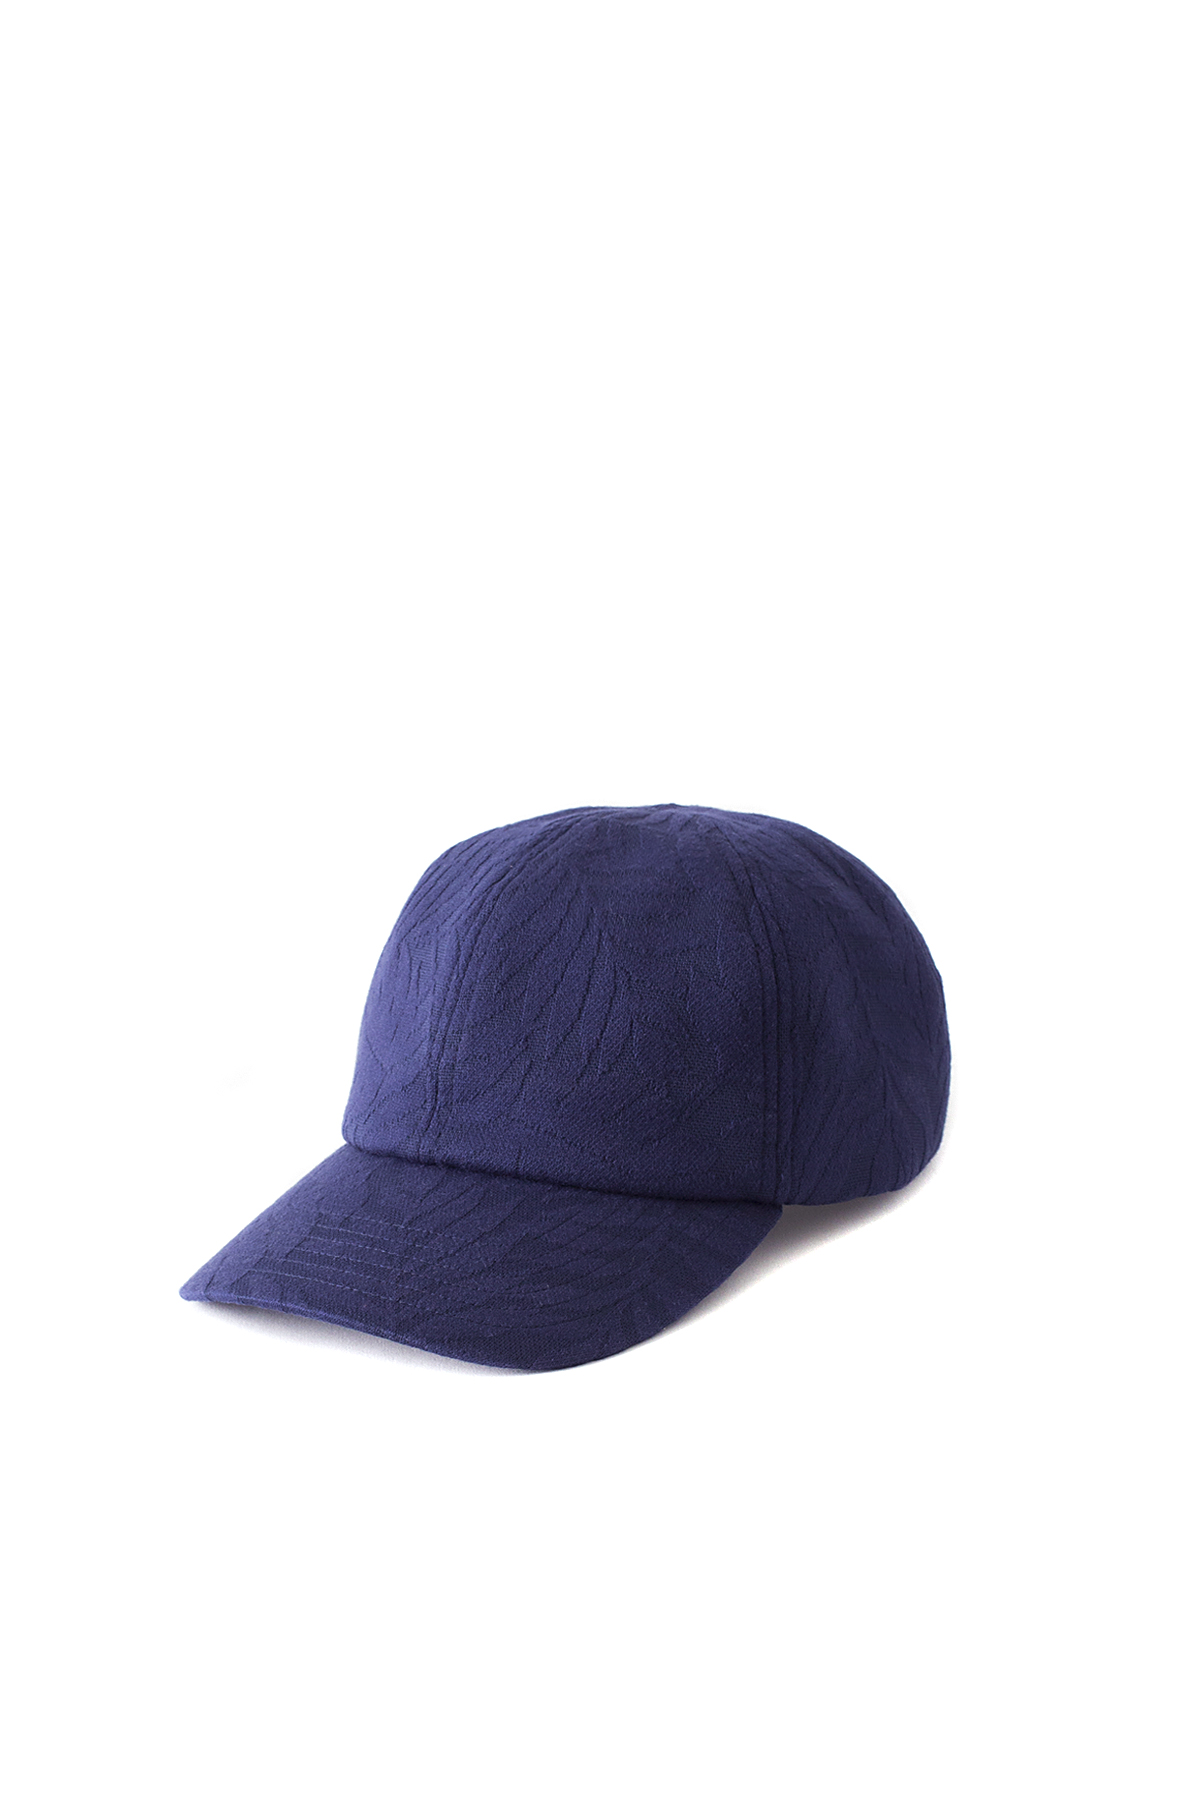 Curly : Palm Cap (Navy JAQ)